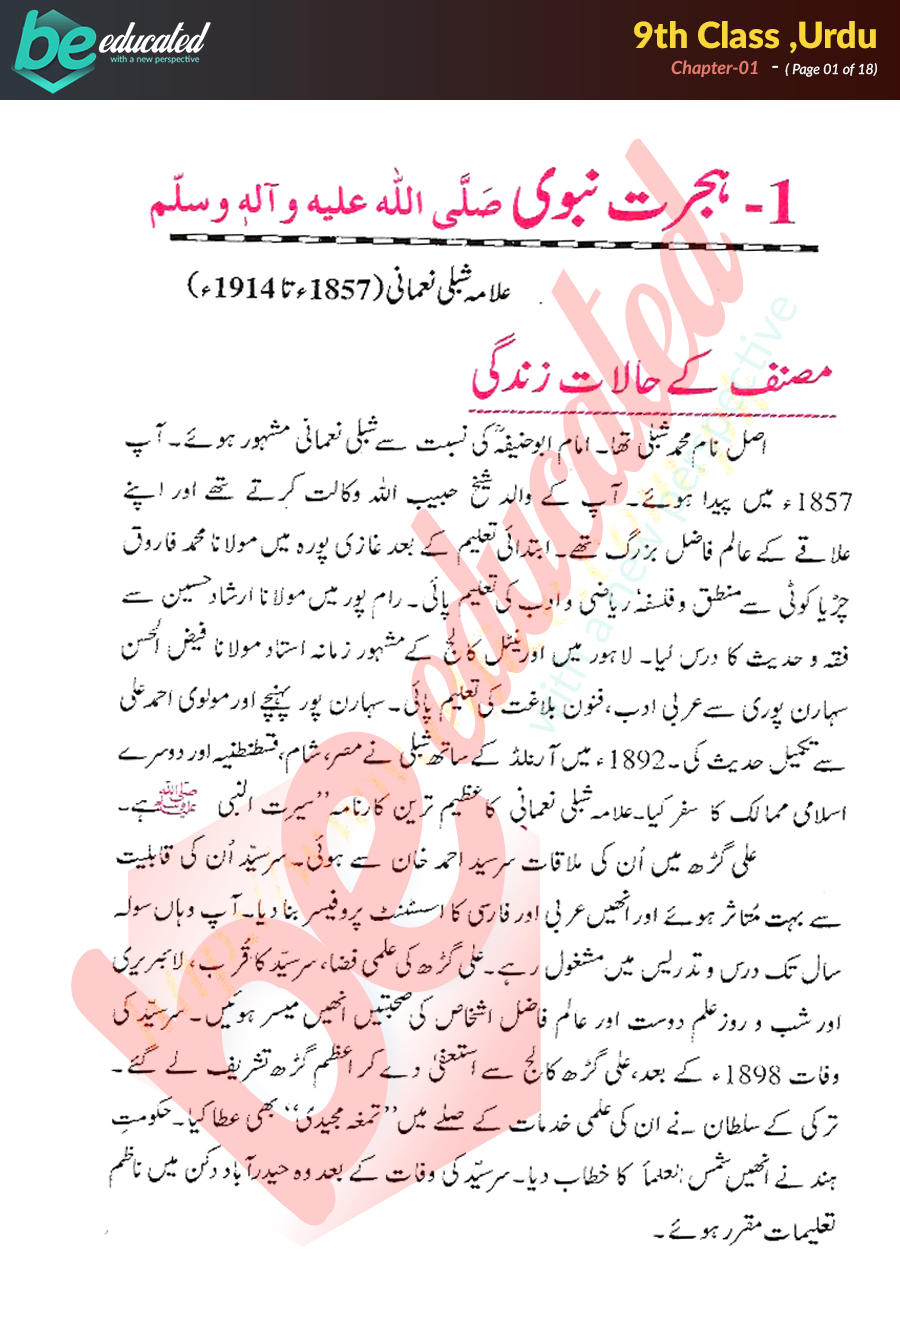 Chapter 1 Urdu 9th Class Notes - Matric Part 1 Notes